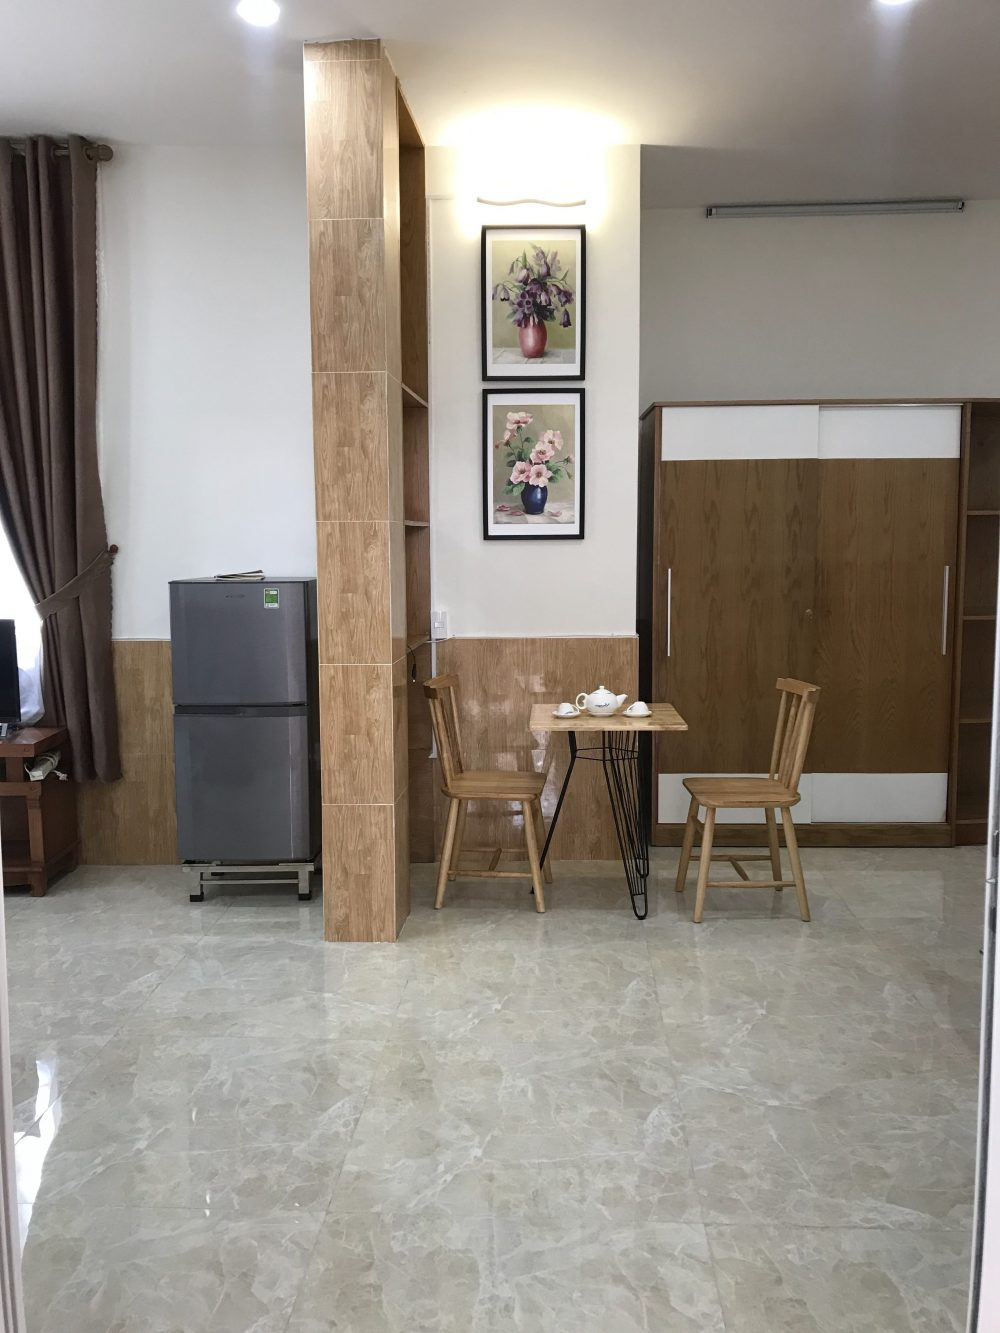 1 bedroom house for rent in Danang city center